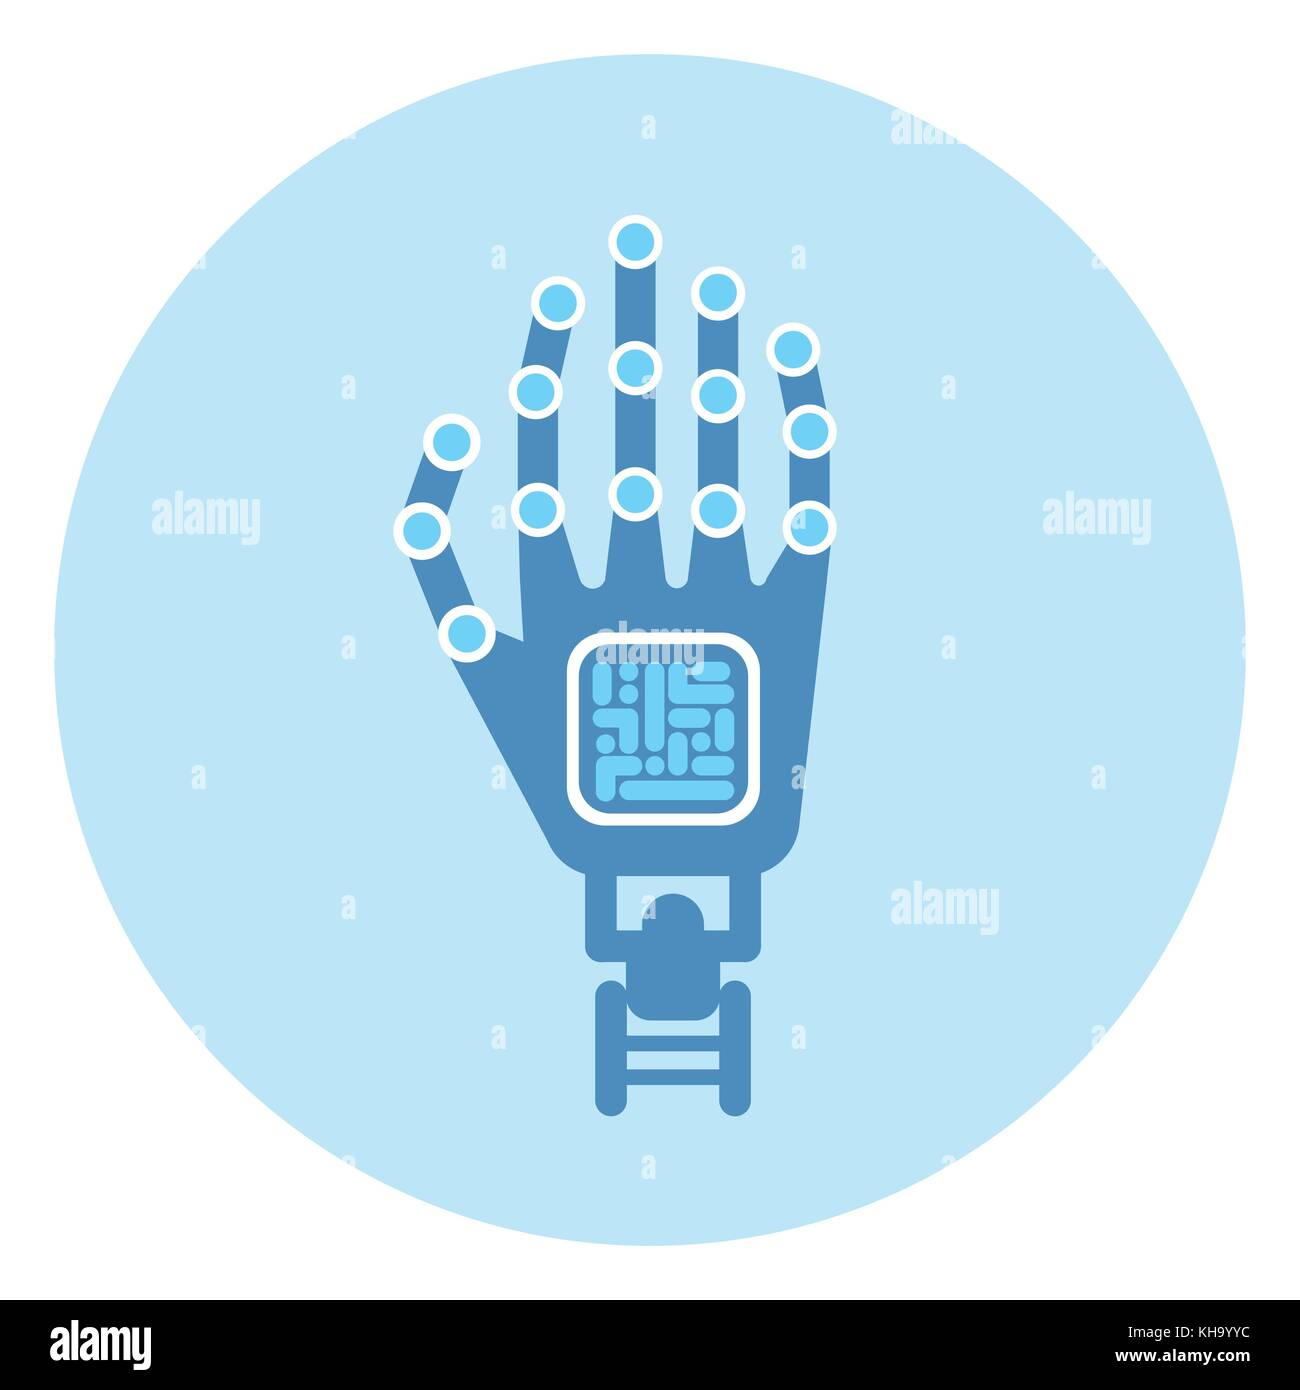 Robotic Arm Icon Modern Robot Technology Concept Stock Vector Art ...